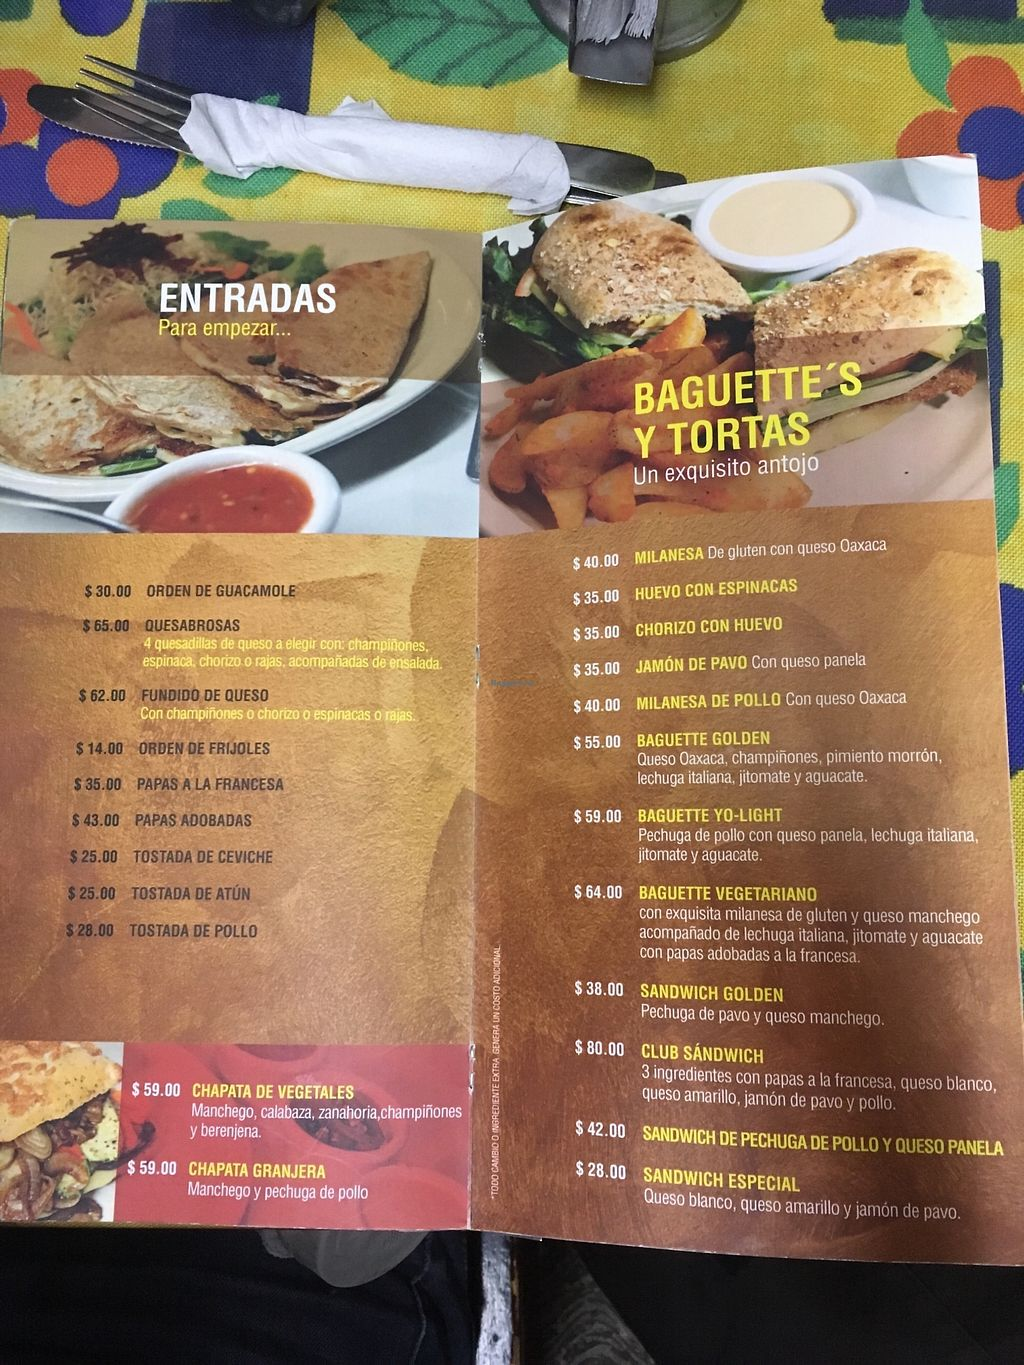 """Photo of Golden  by <a href=""""/members/profile/Moon%C3%ADqua"""">Mooníqua</a> <br/>Appearizers and tortas/sandwiches --- entradas y tortas/sandwiches  <br/> March 5, 2018  - <a href='/contact/abuse/image/66274/367155'>Report</a>"""